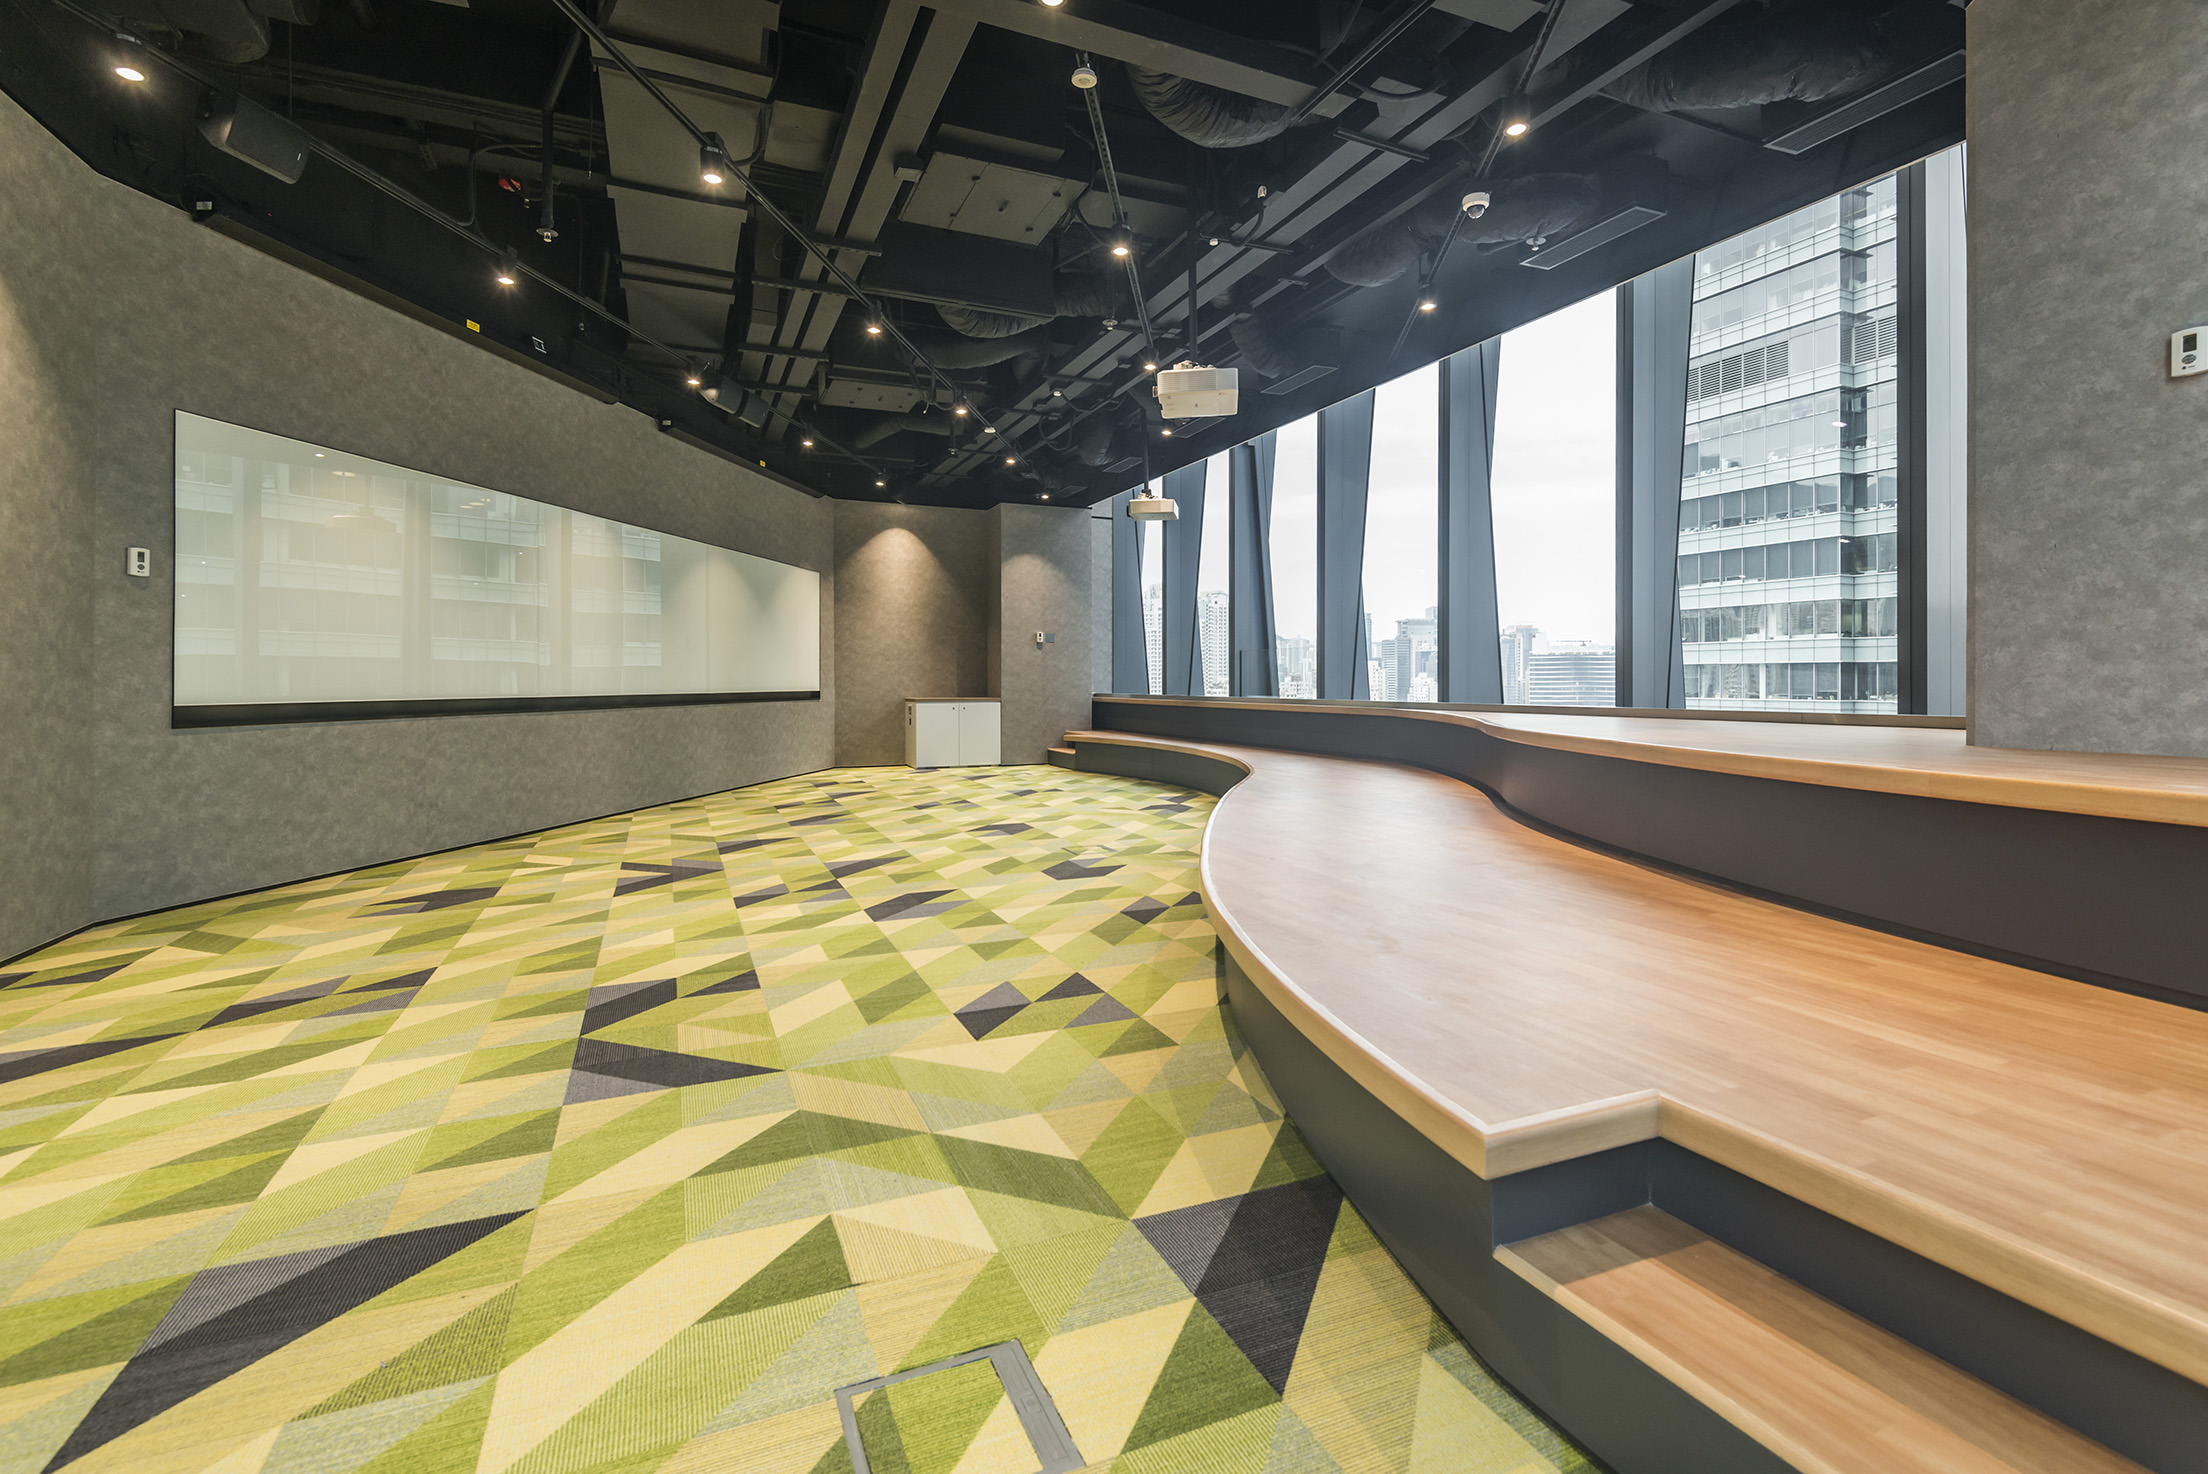 jeb-architecturalfinishes-compac-forbo-resinpanel-office-hk-08.jpg